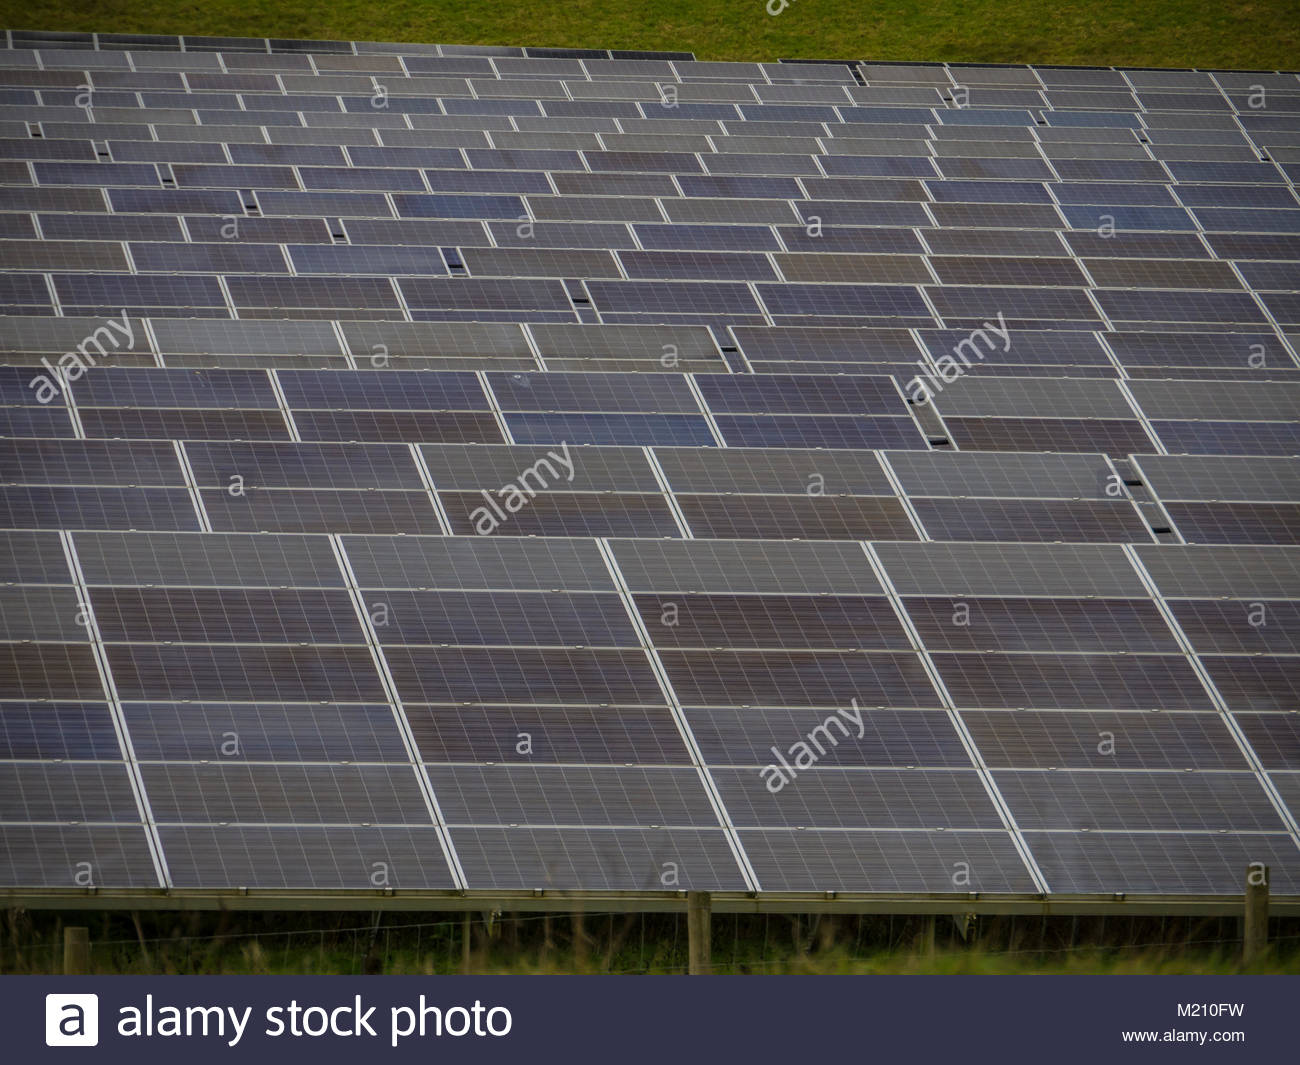 West Sussex Solarzellen im Feld Stockbild